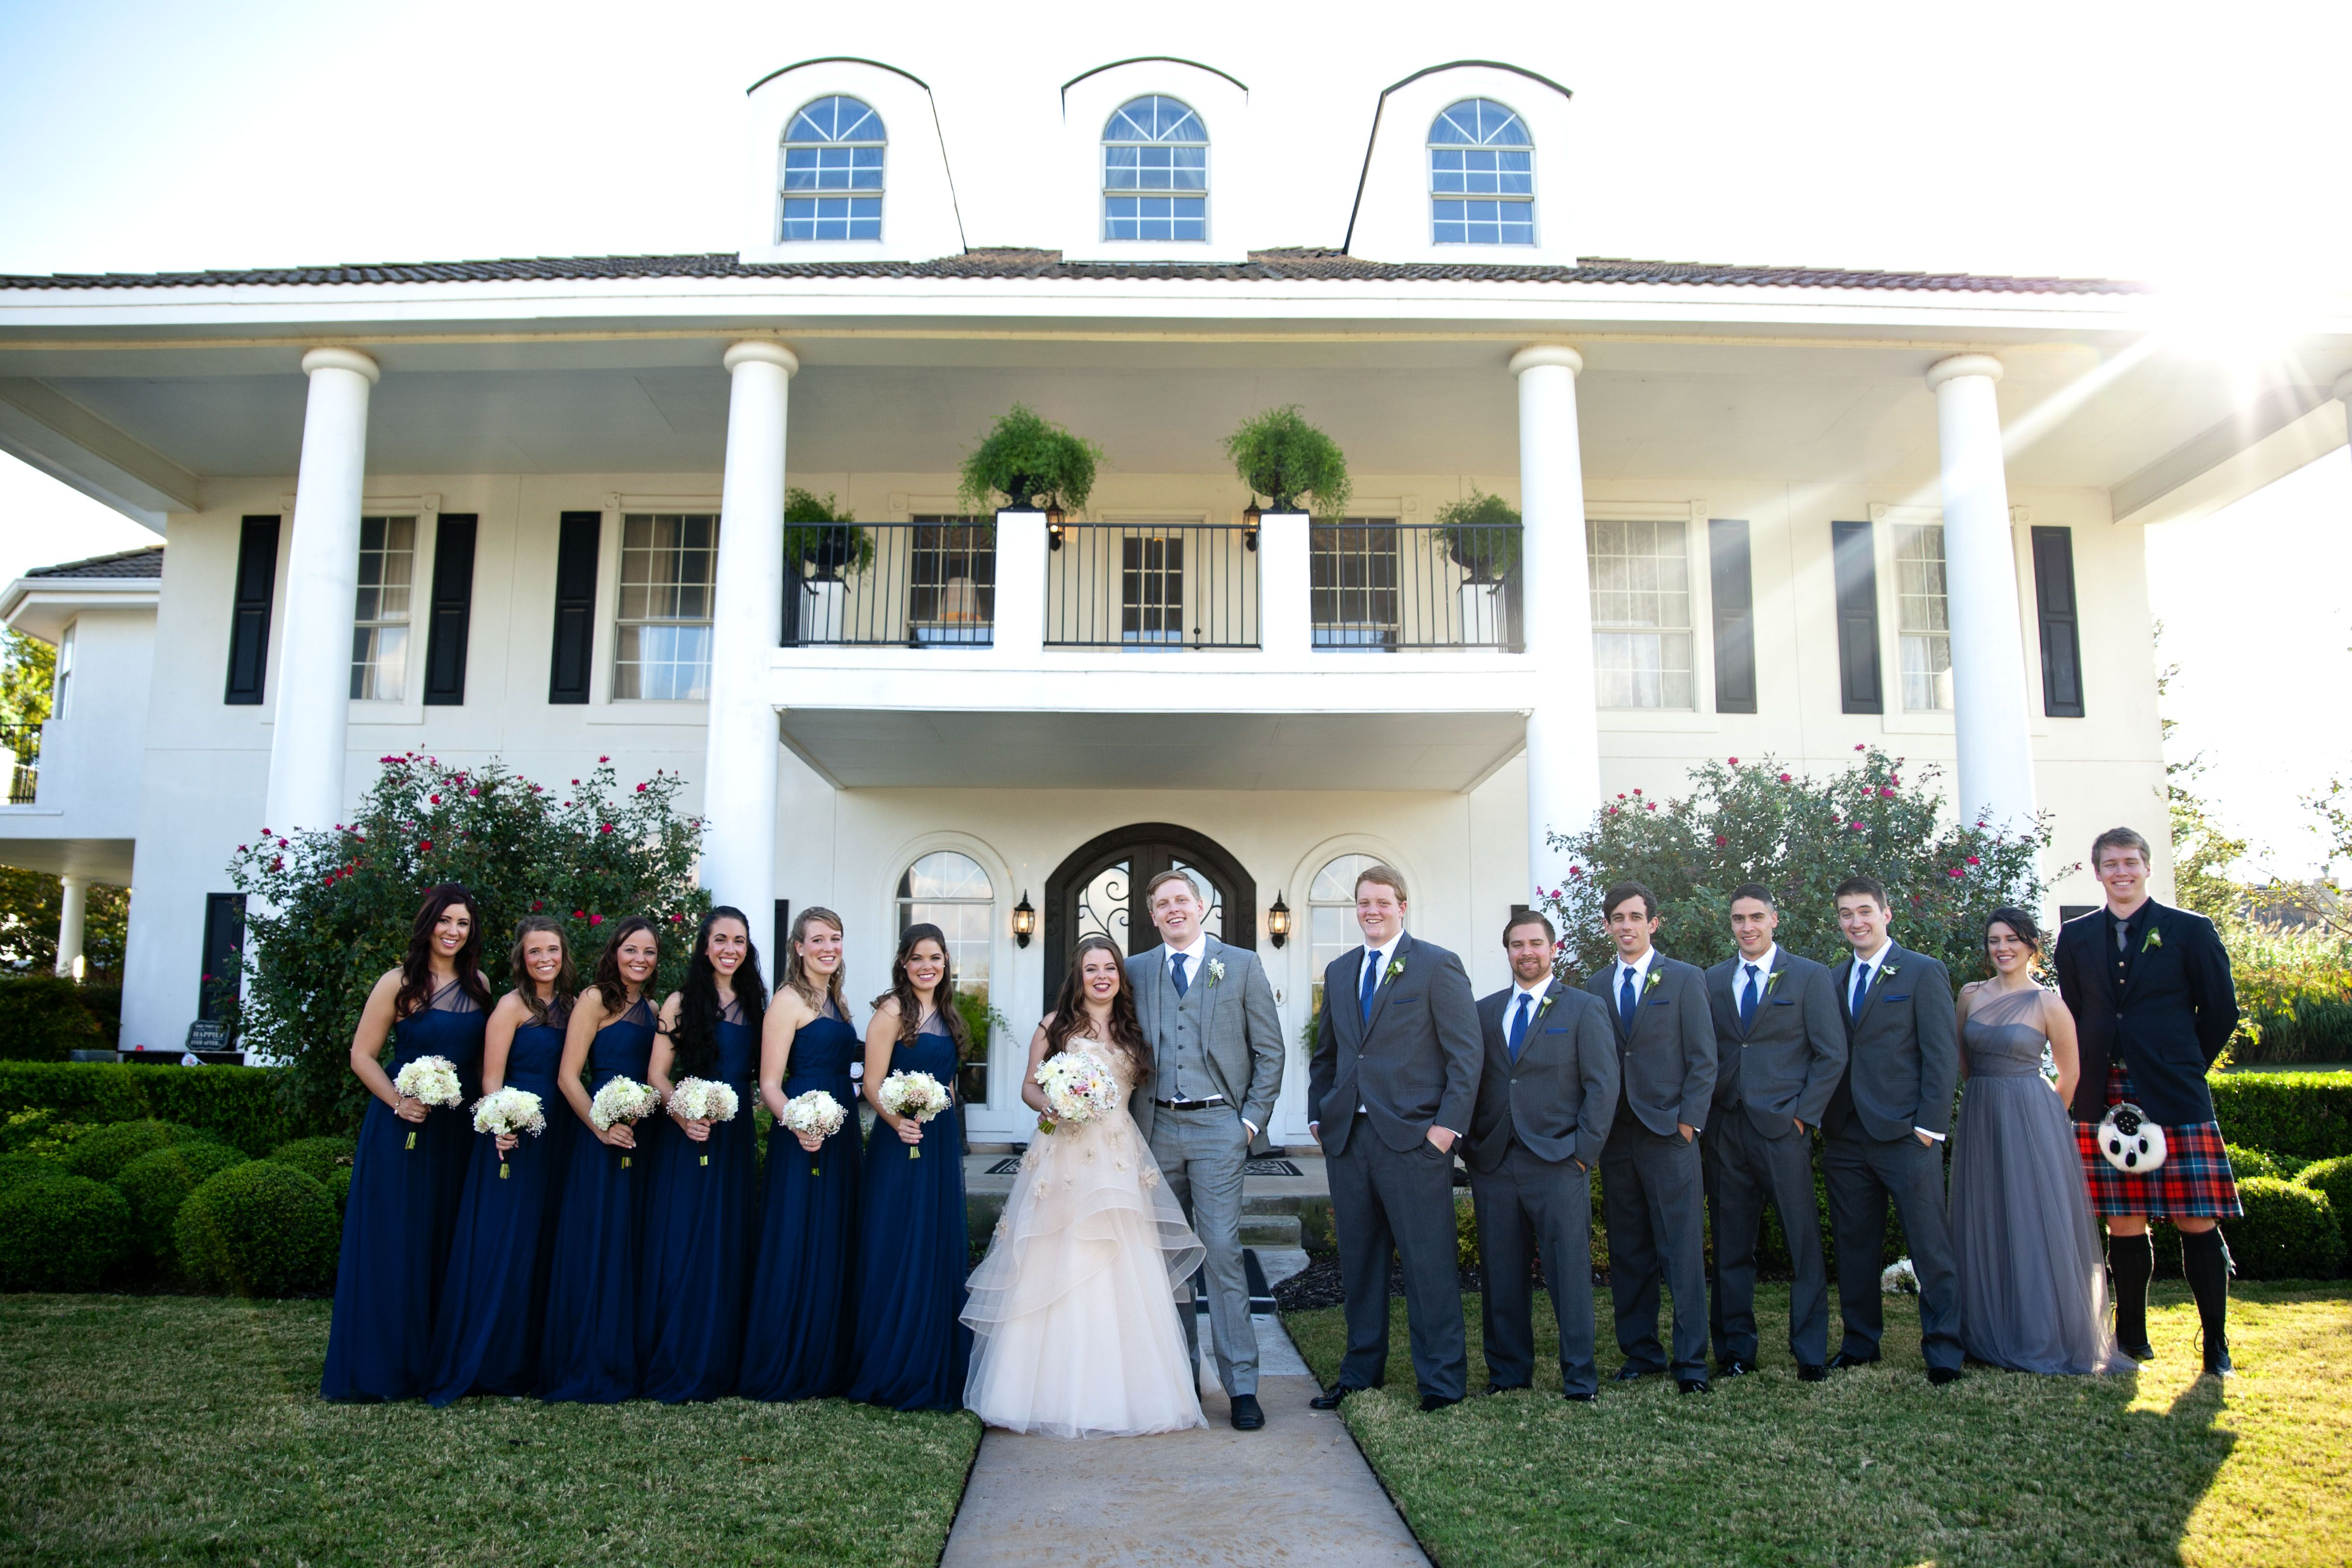 Navy and Gray Wedding Party at The Plantation House